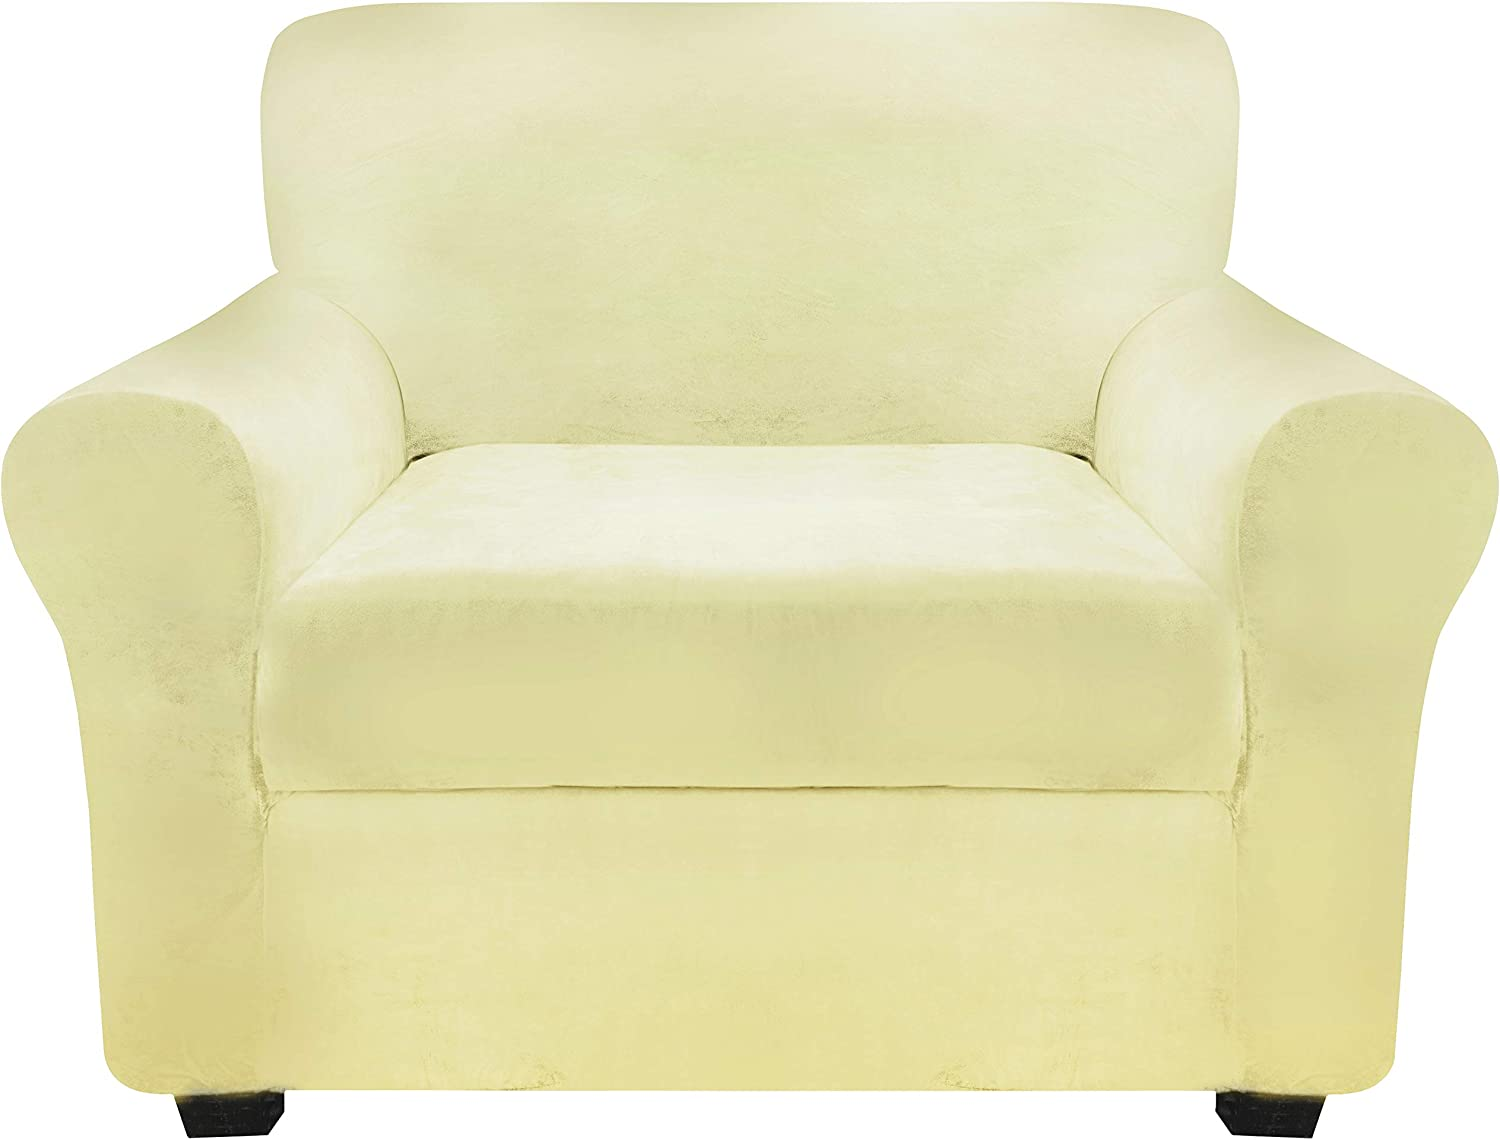 FINERFIBER Velvet High Stretch 2 Piece Armchair Slipcover | Thick Couch Cover for Pets | Couch Covers for 1 Cushion Couch | Furniture Protector for Separate Cushion Couch (Armchair, Ivory)